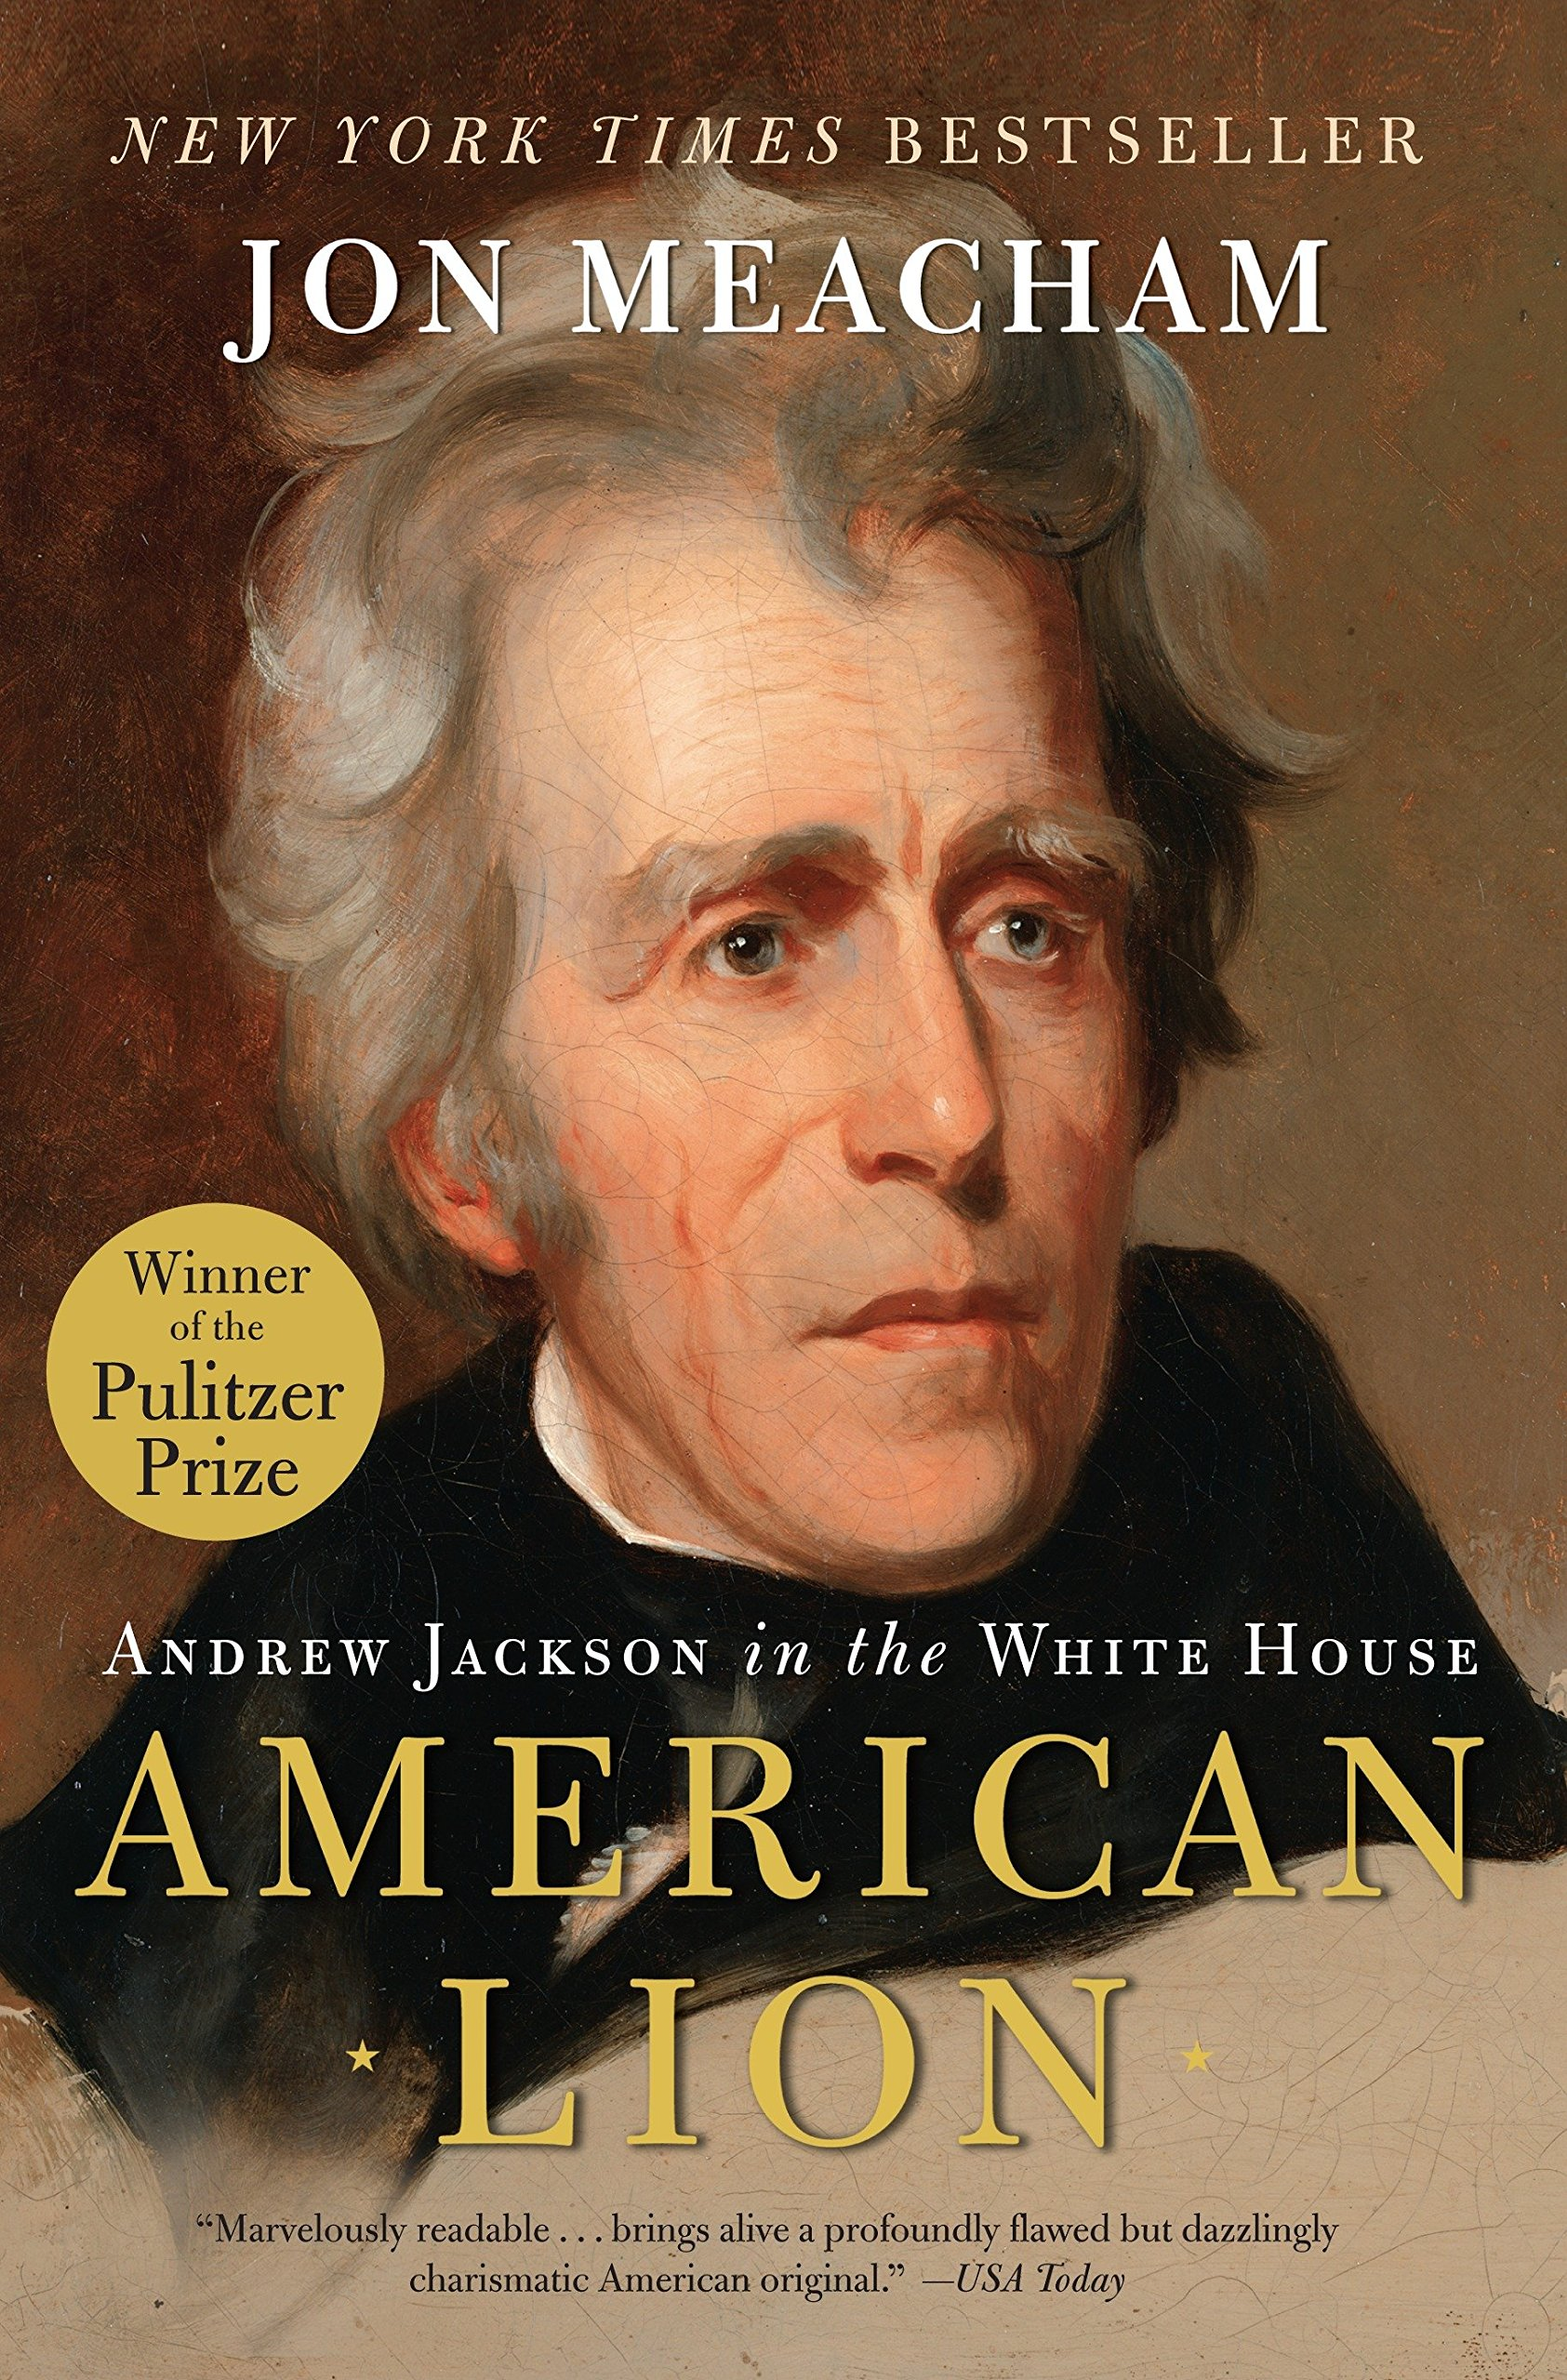 Image OfAMERICAN LION: Andrew Jackson In The White House